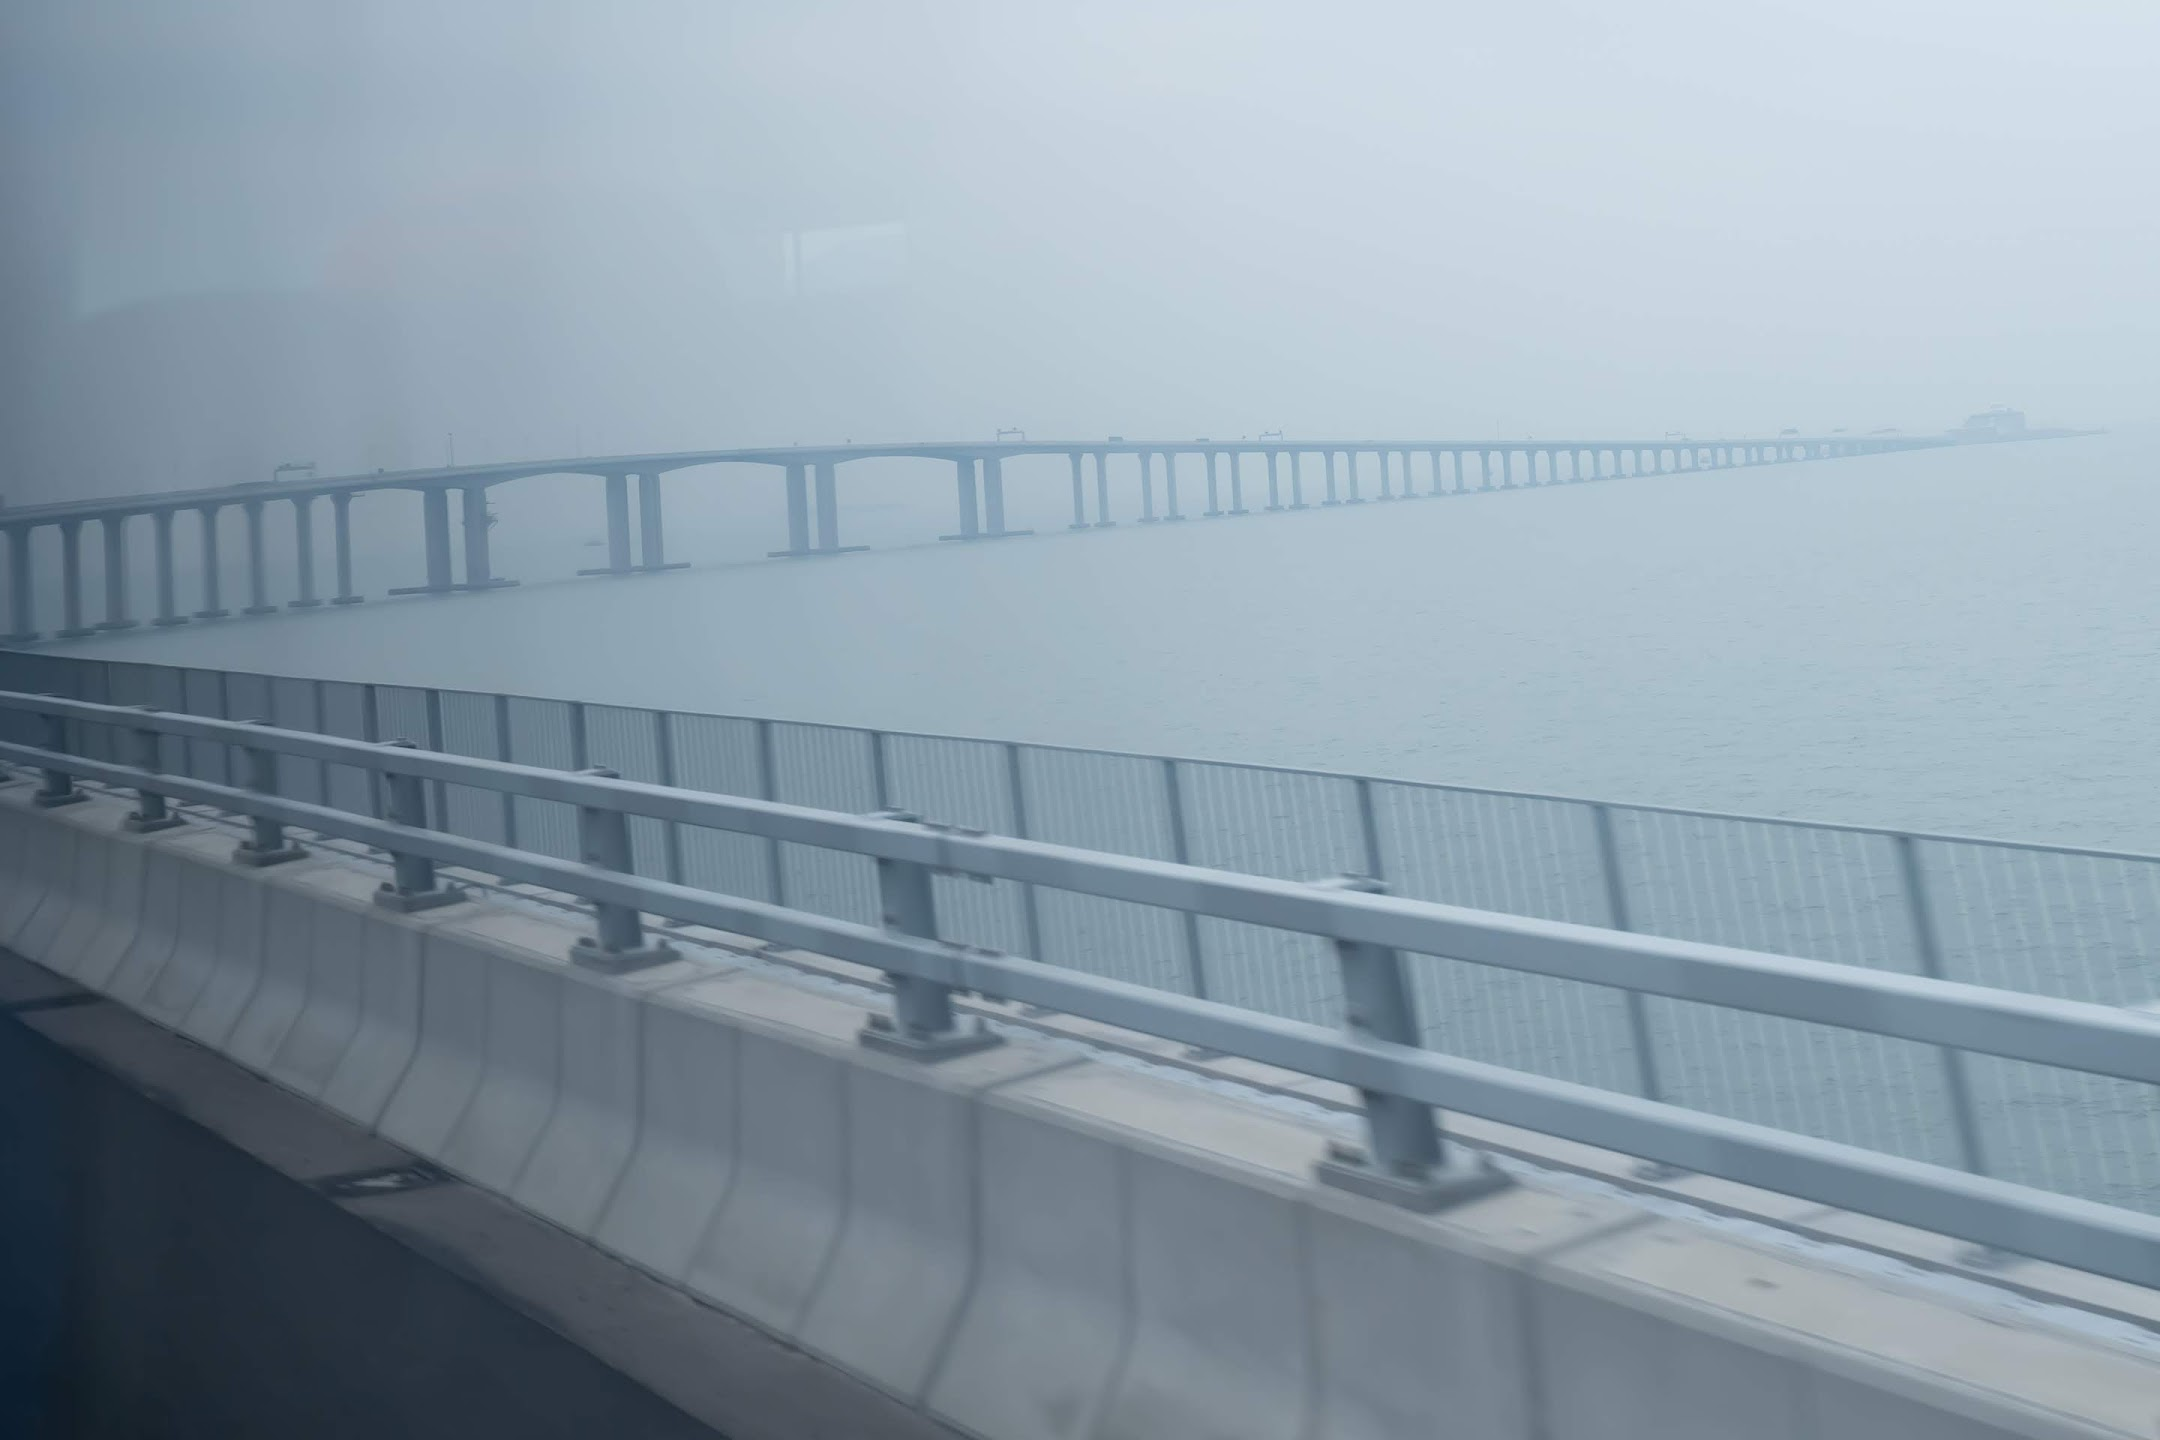 港珠澳大橋(Hong Kong-Zhuhai-Macao Bridge)2